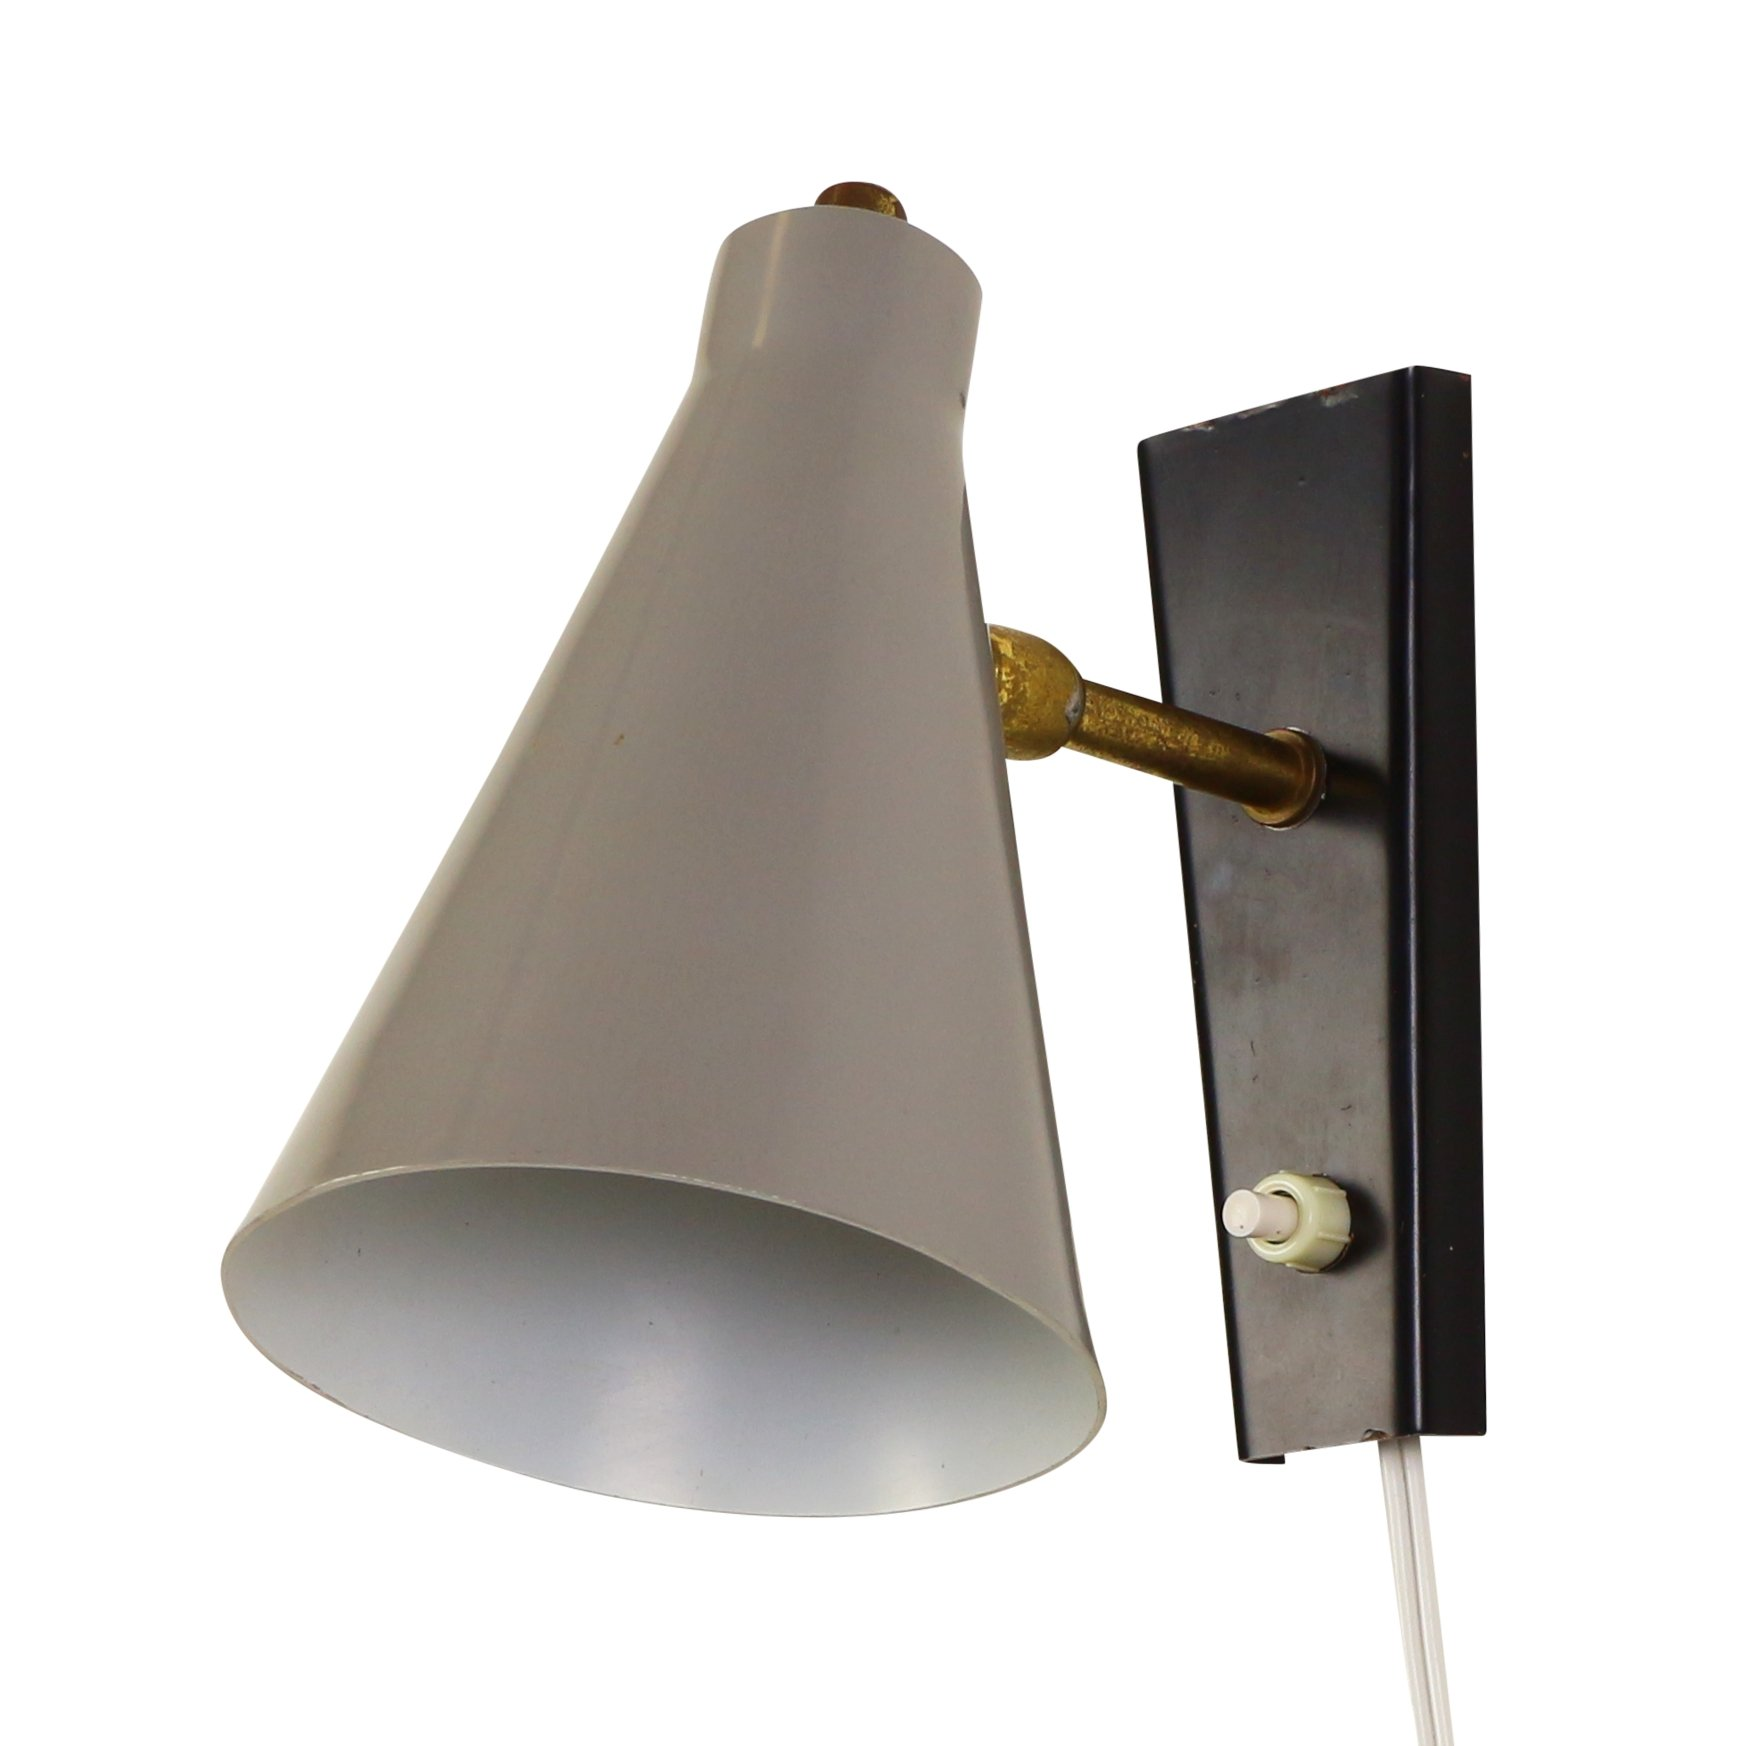 Vintage Grey Wall Lights : Grey and Black Italian design wall light, 1950s #1083